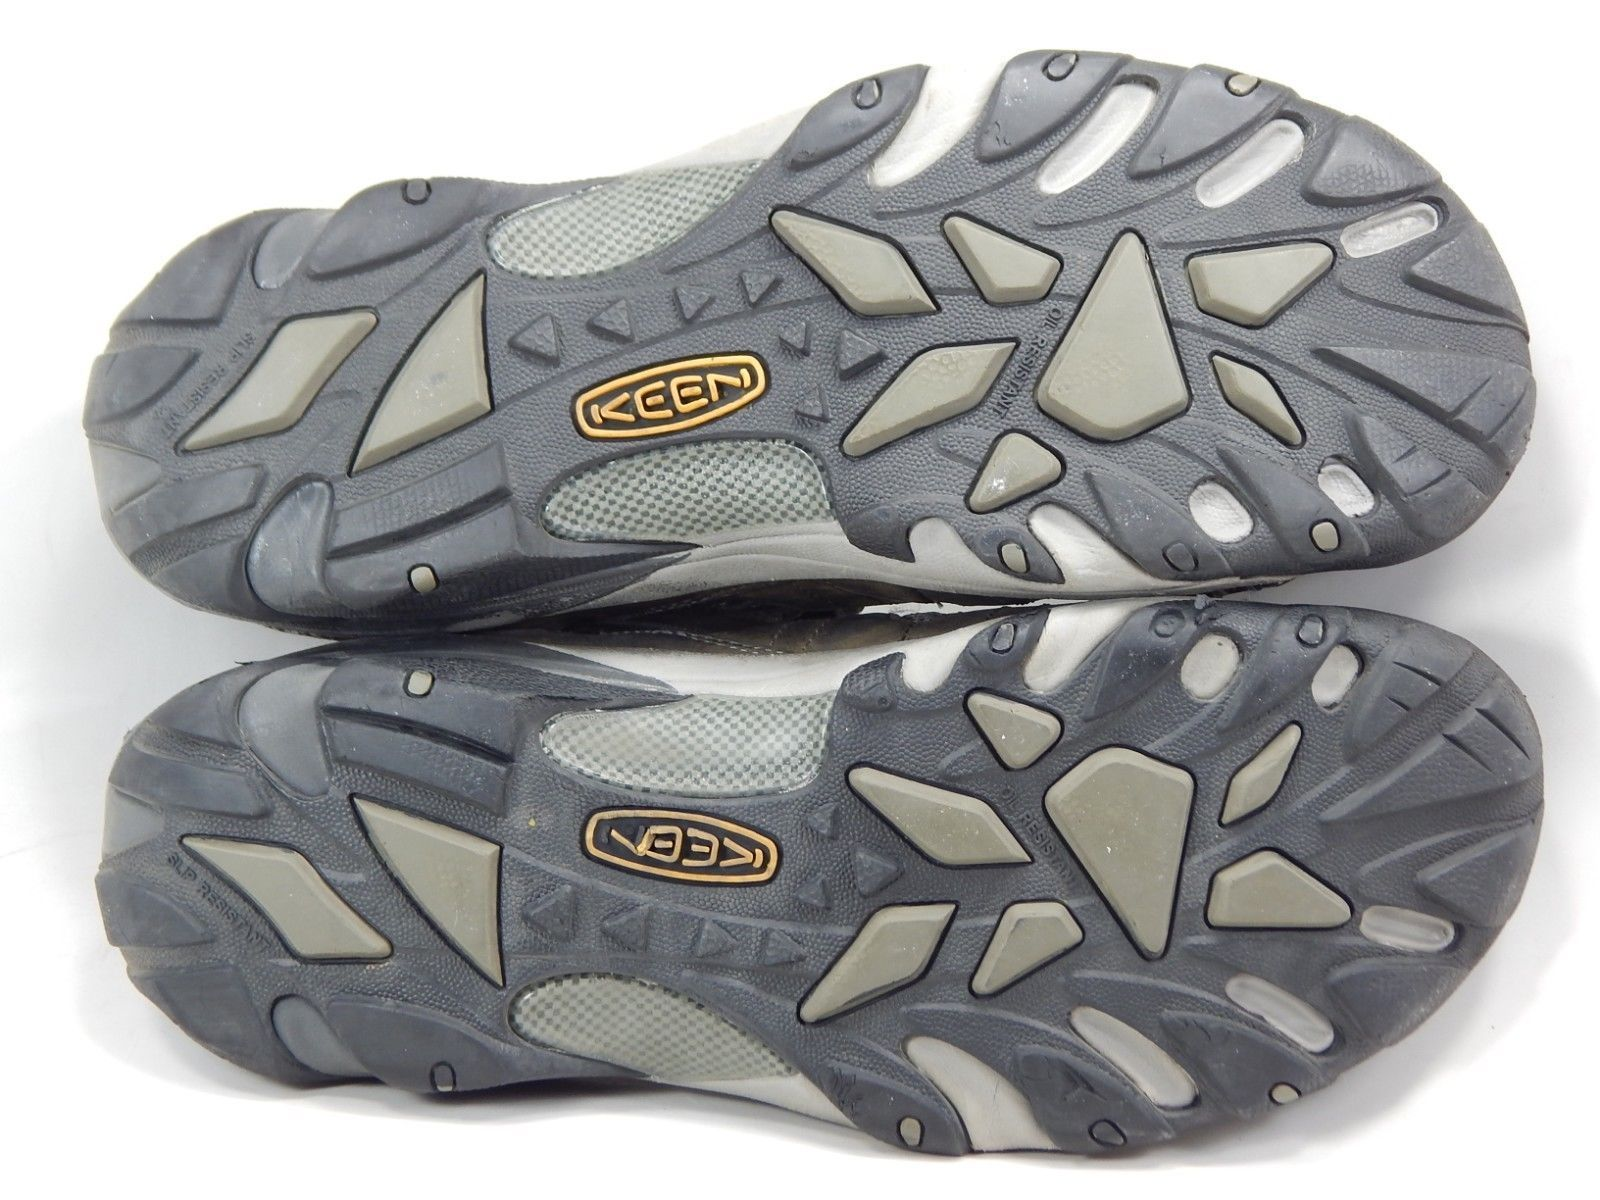 Keen Atlanta Cool ESD Size US 13 M (D) EU 47 Men's Steel Toe Work Shoes 1006979